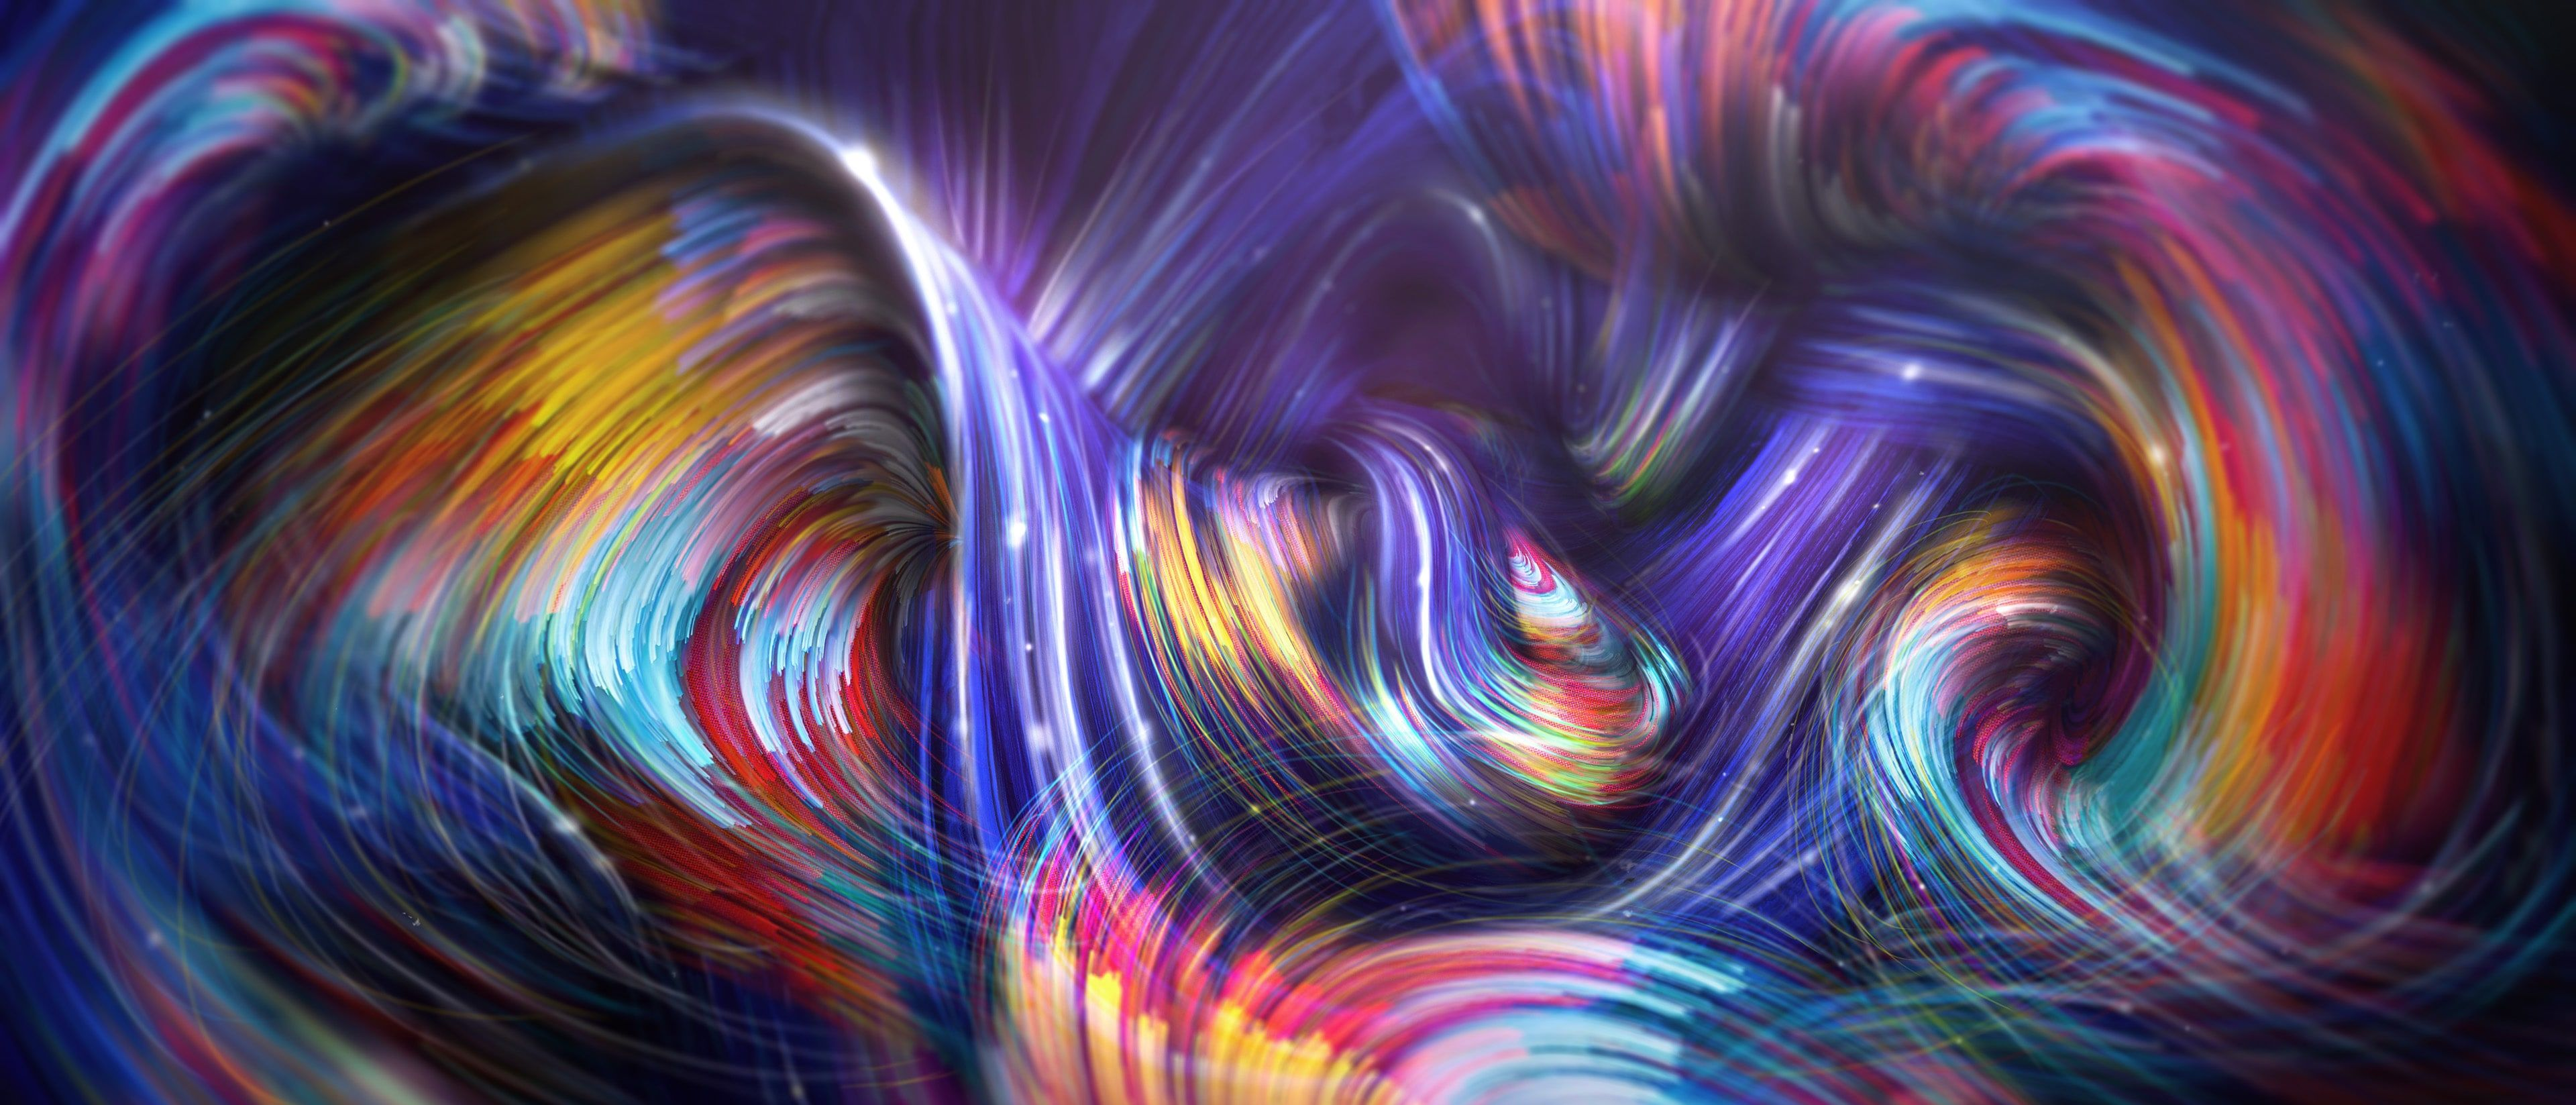 Waves Forces Colorful Paint 4k Abstract